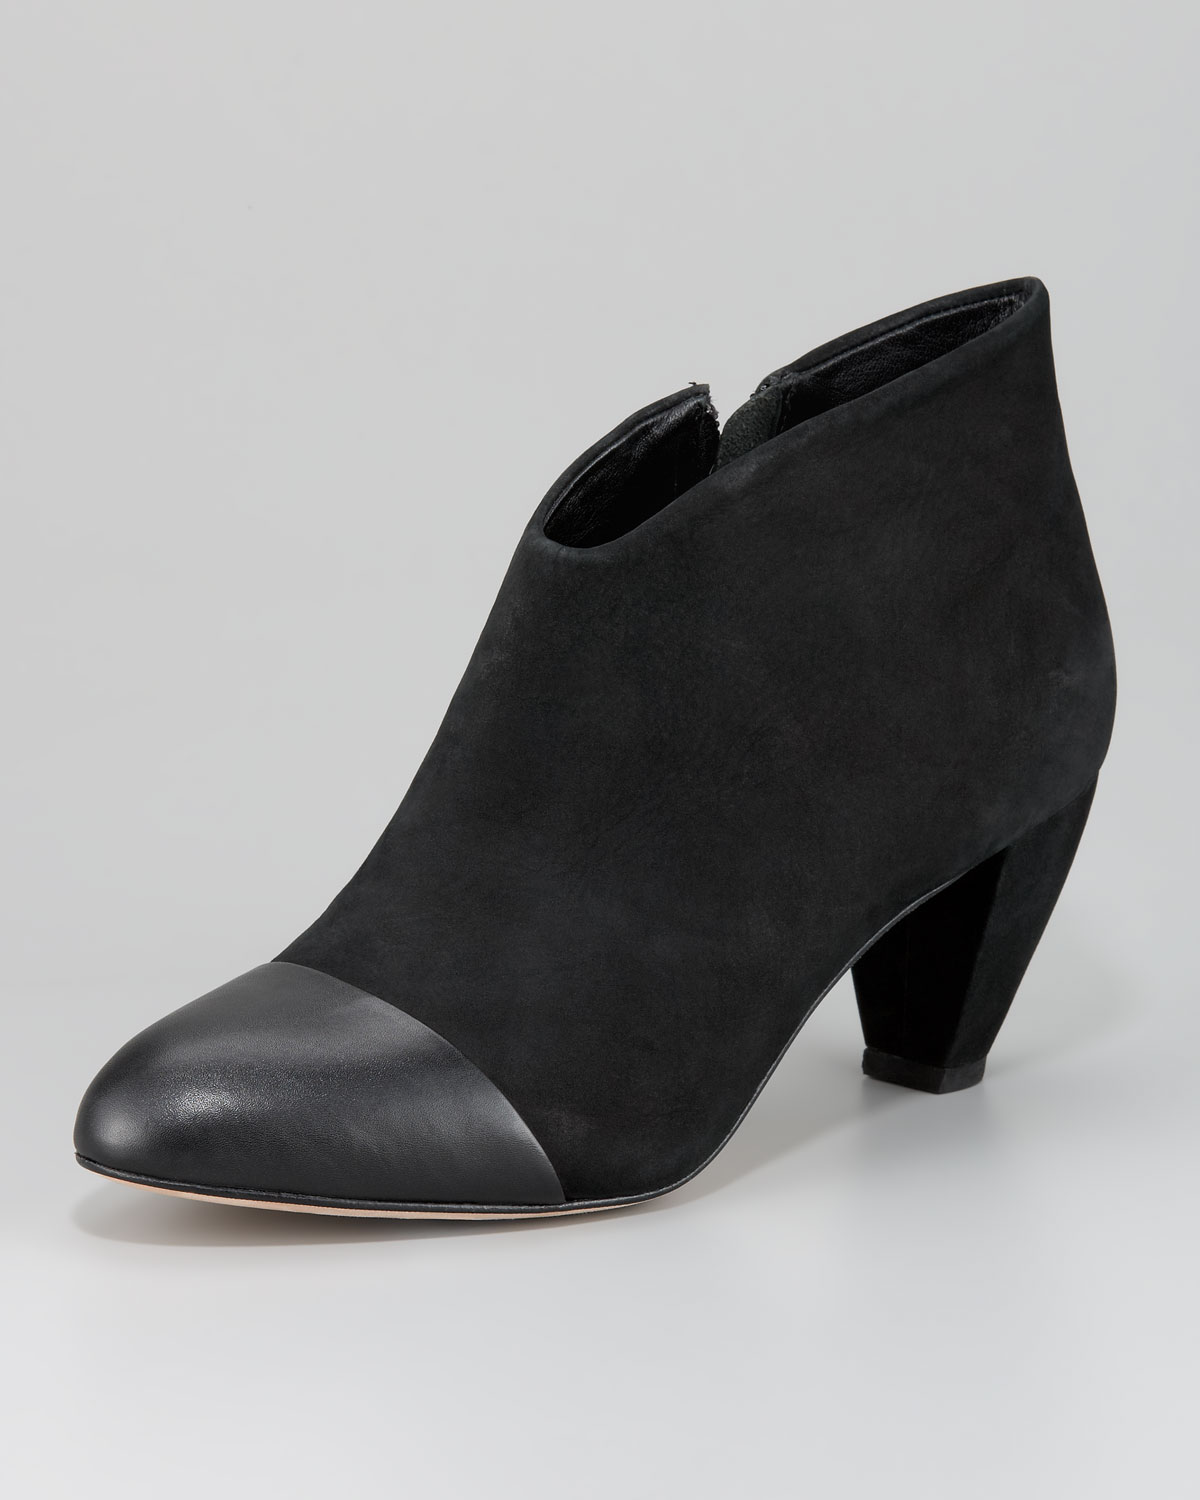 Shoes on Trend Fall Shoes Midi Boots Platform Shoes Low Heels Fall Mules Leather Shoes Animal Prints. Shoes on Sale. Shoes $25 & Under. Ankle Boots / Booties Select a Category Lulus x Matisse Henry Black Suede Leather High Heel Ankle Booties $84 Madden Girl Fibi Black High Heel Ankle Booties.